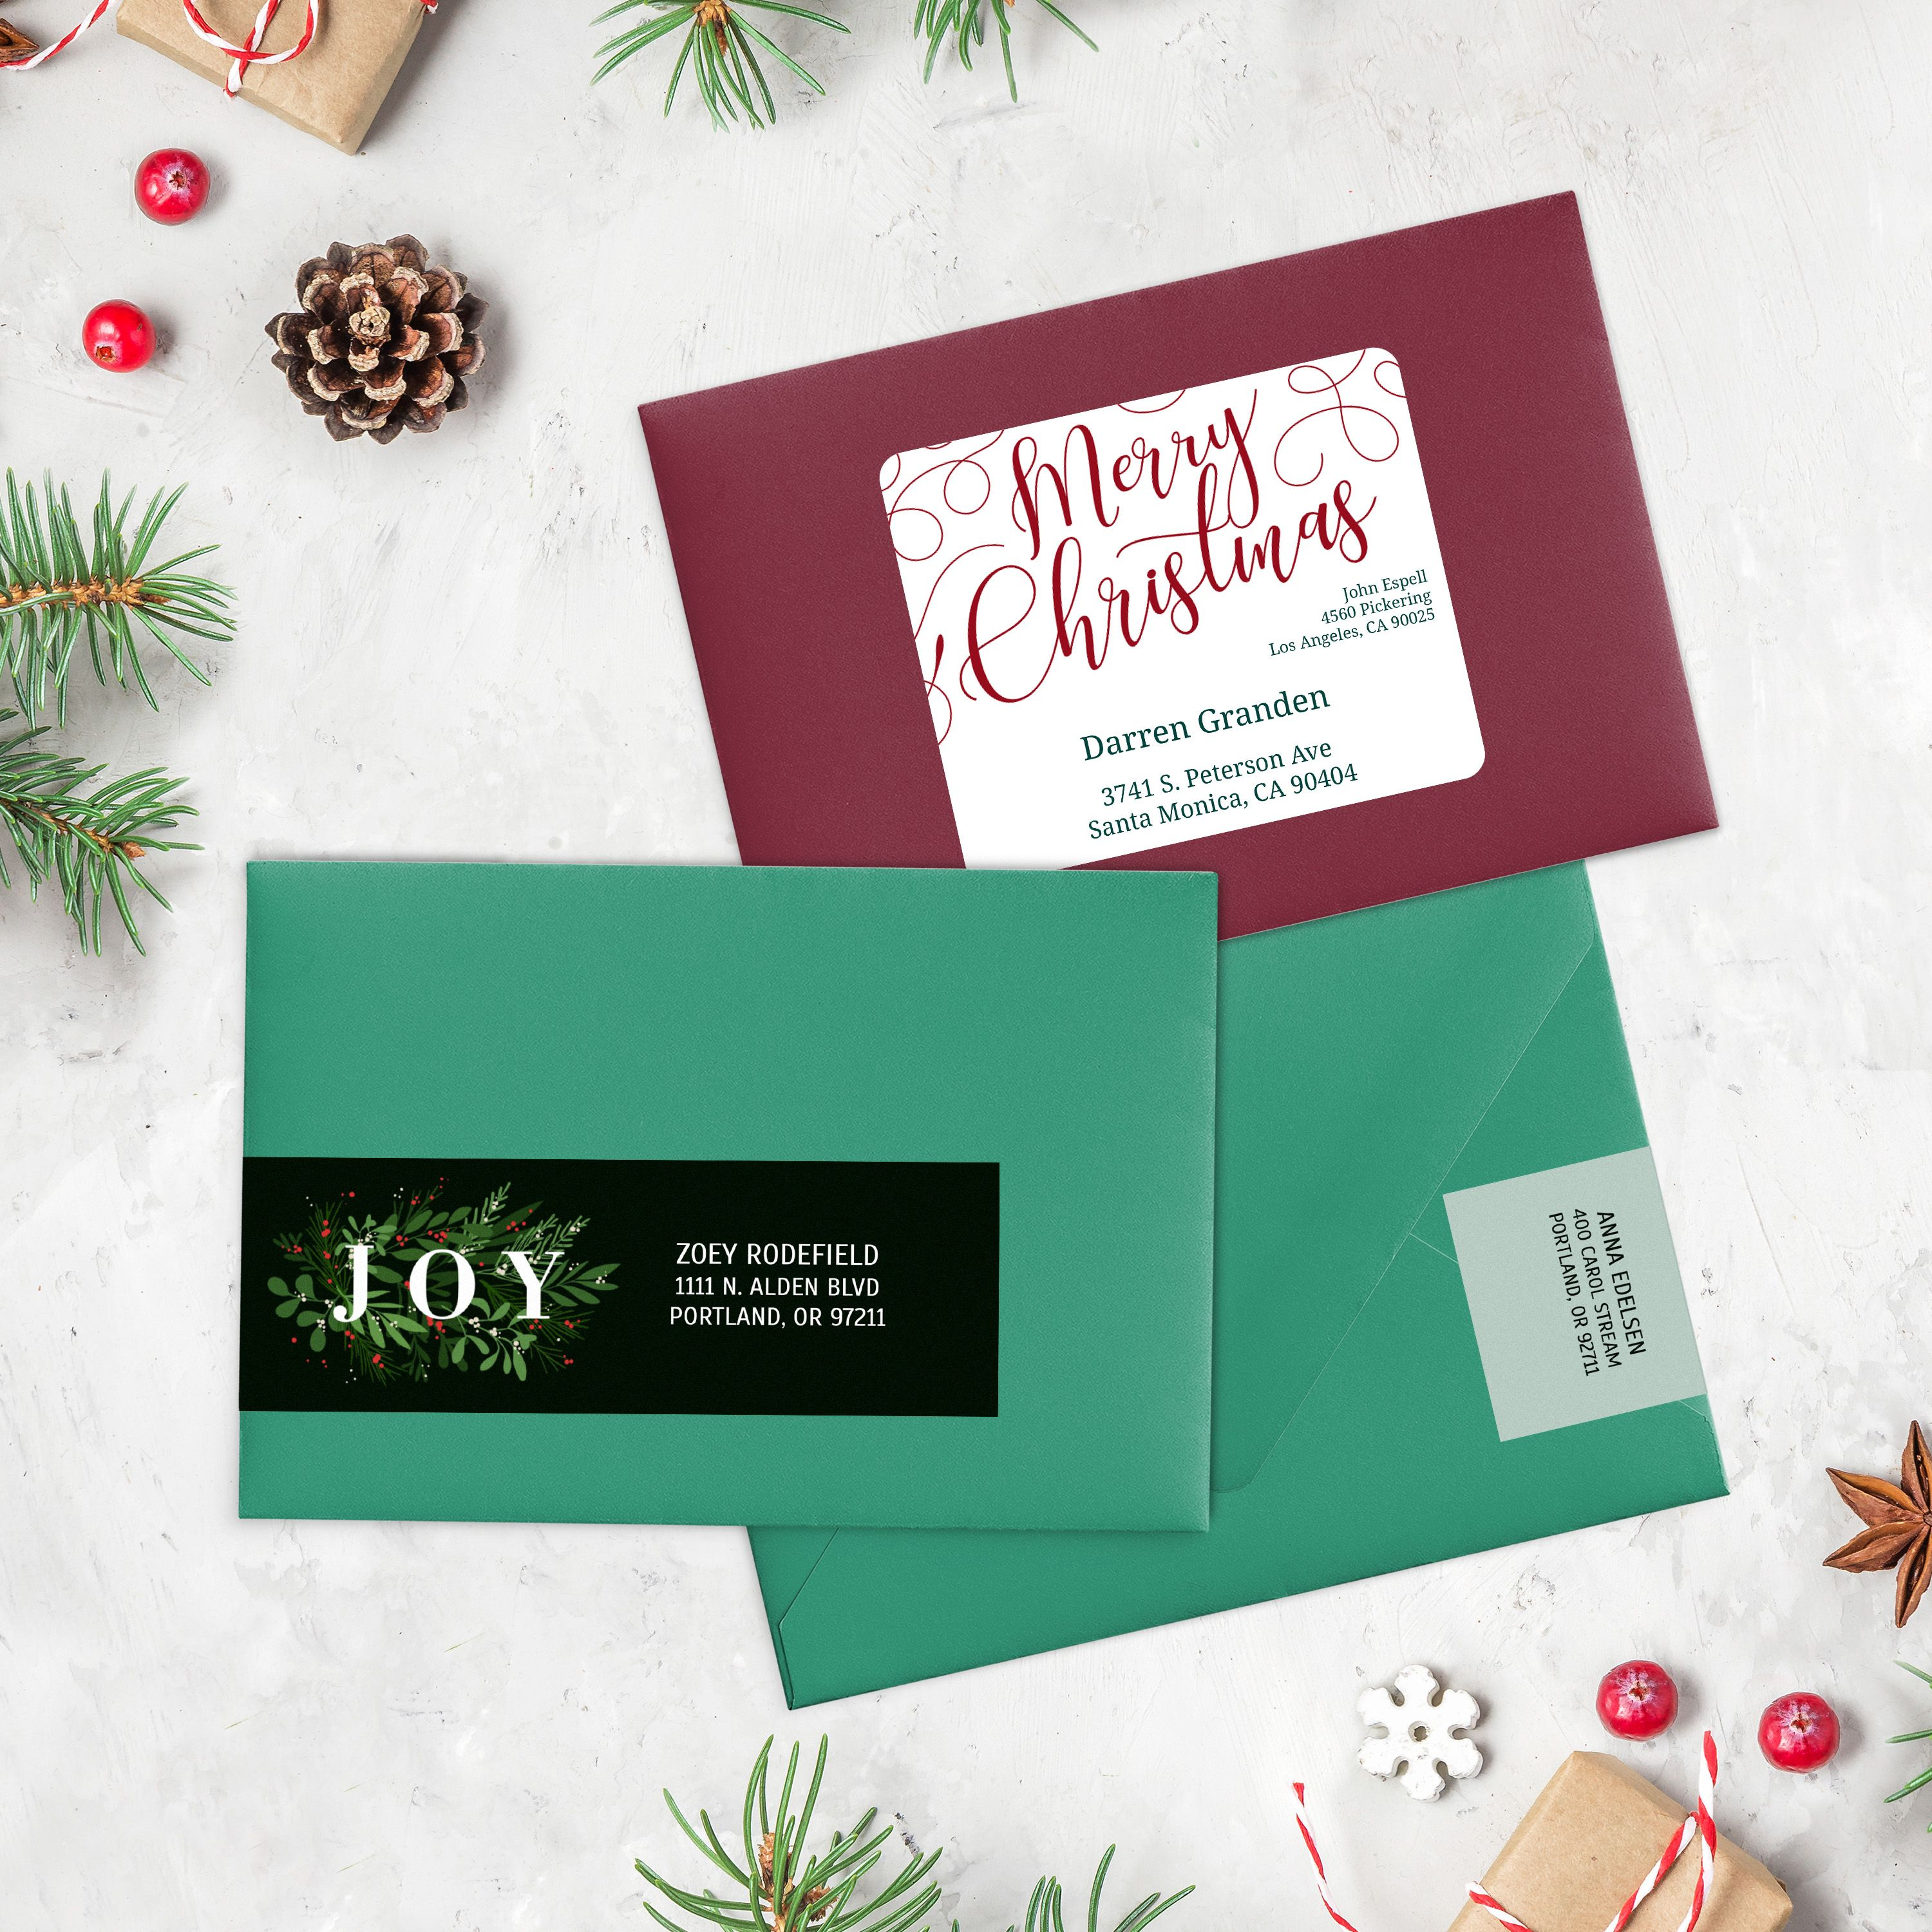 Personalized Holiday Address Labels Free Templates Holiday Card Template Holiday Address Labels Personalized Holiday